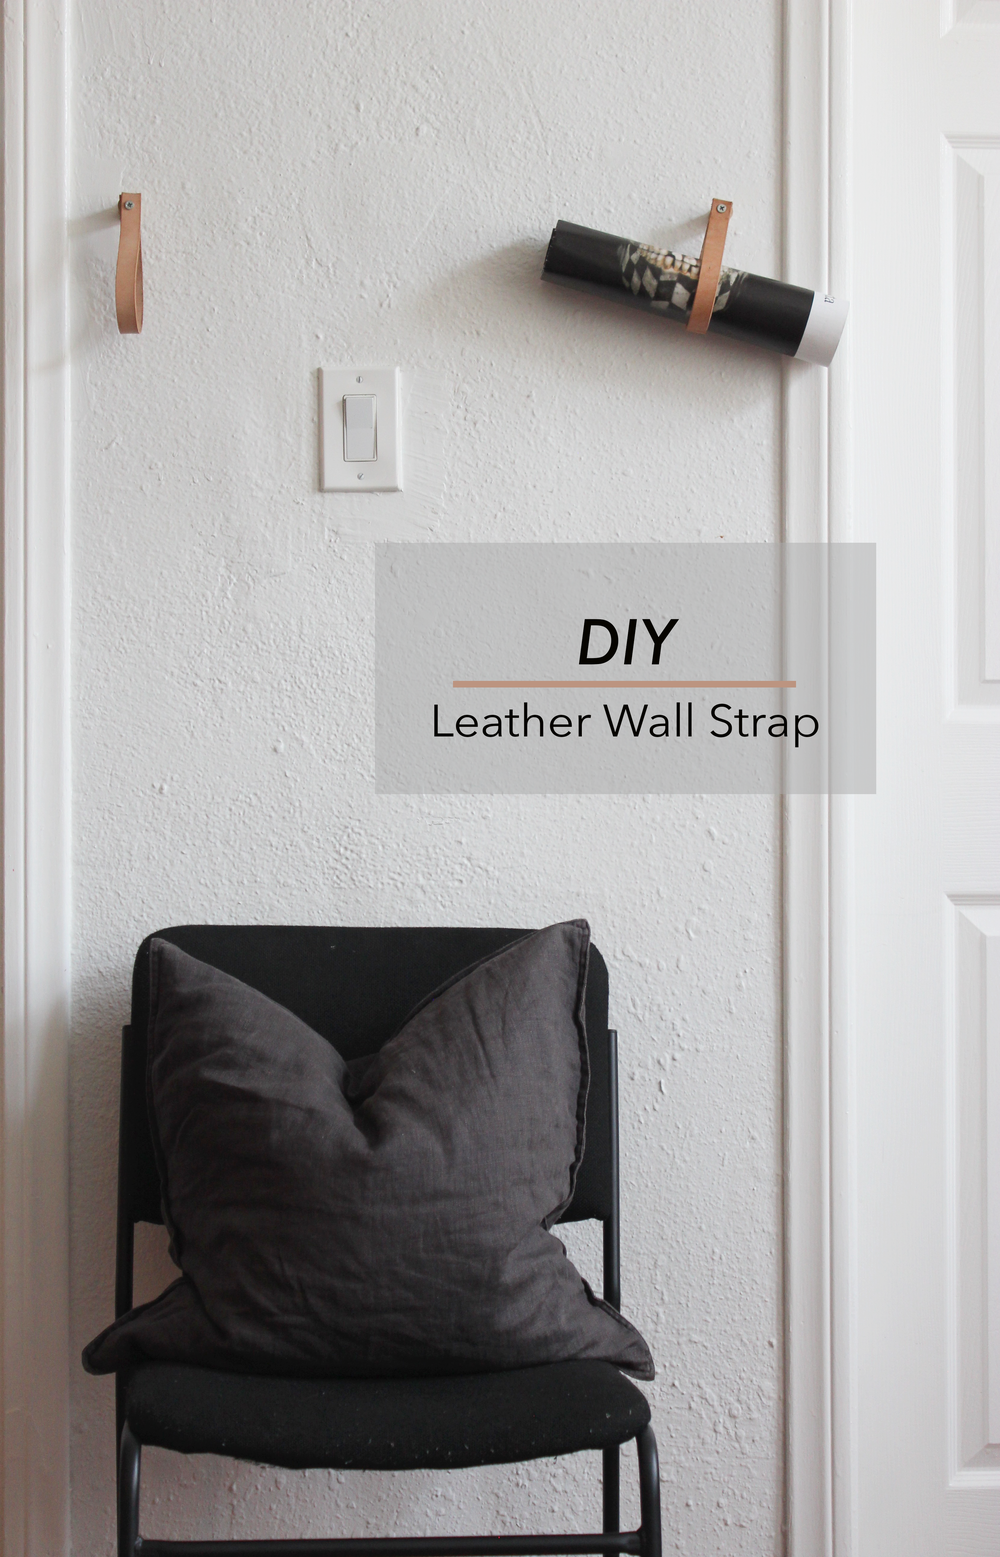 DIY Leather Wall Hanging Strap hometohem.com 2016_8